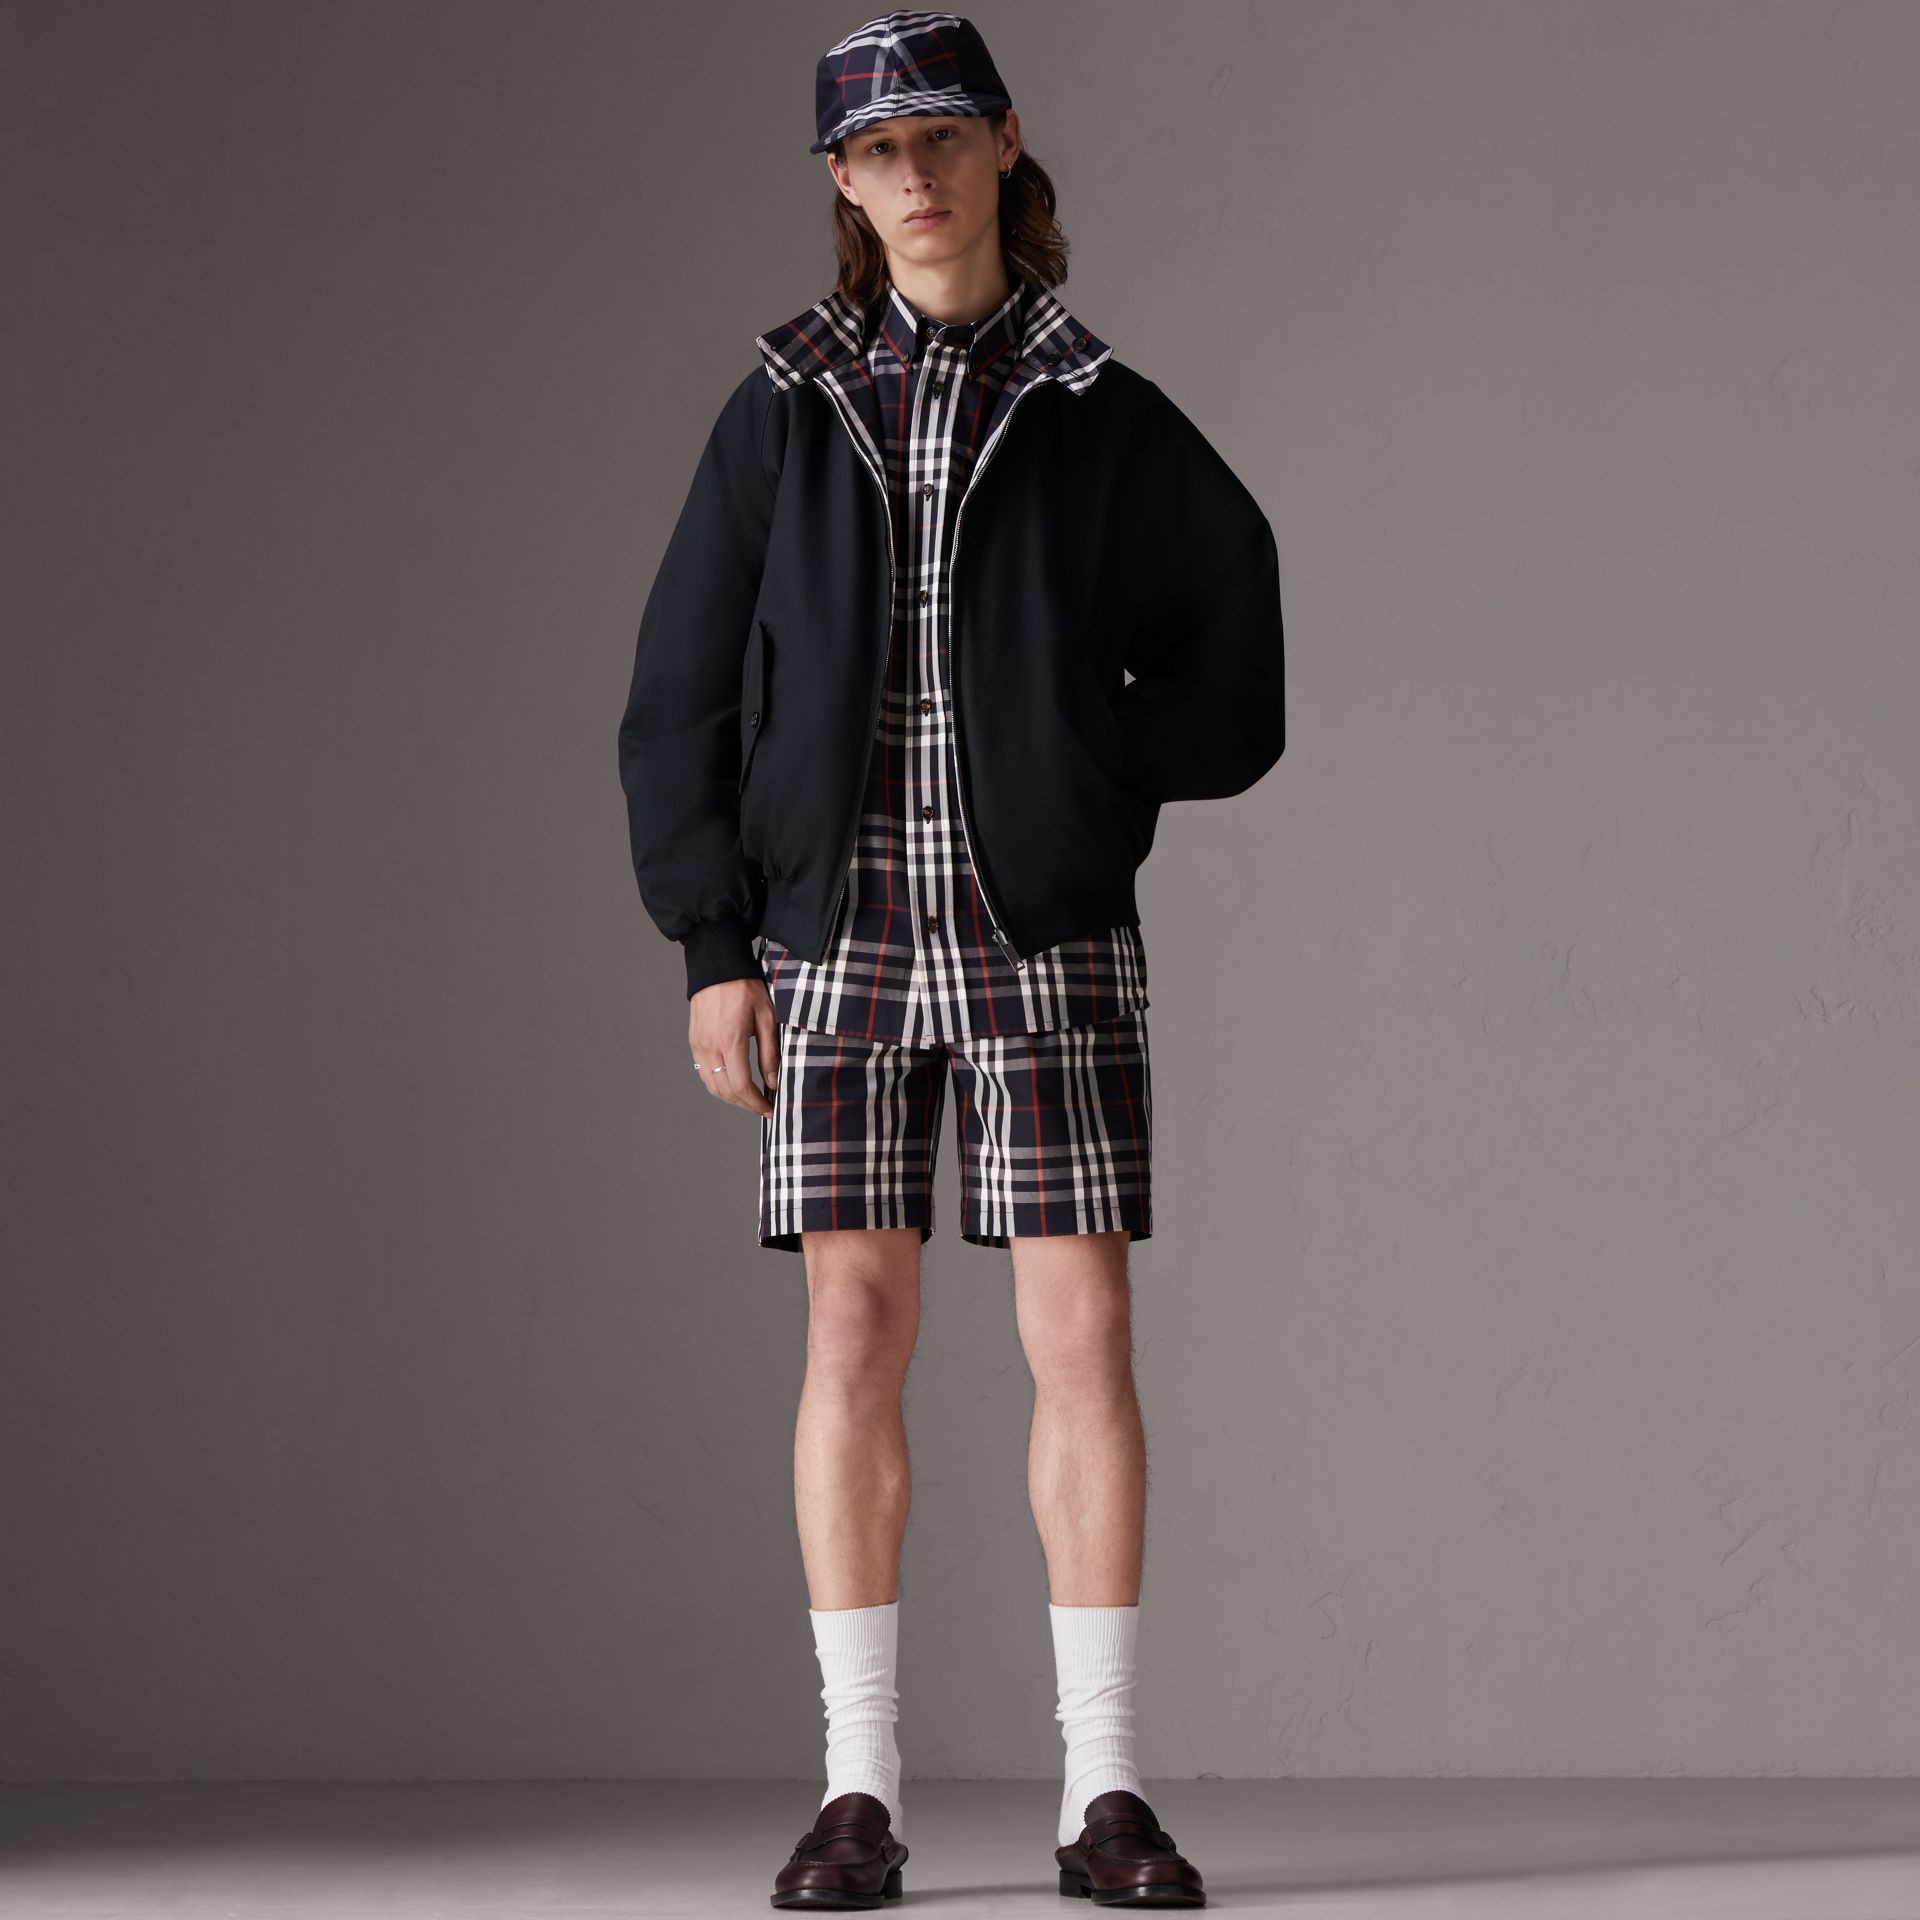 Gosha x Burberry Tailored Shorts in Navy | Burberry - gallery image 2